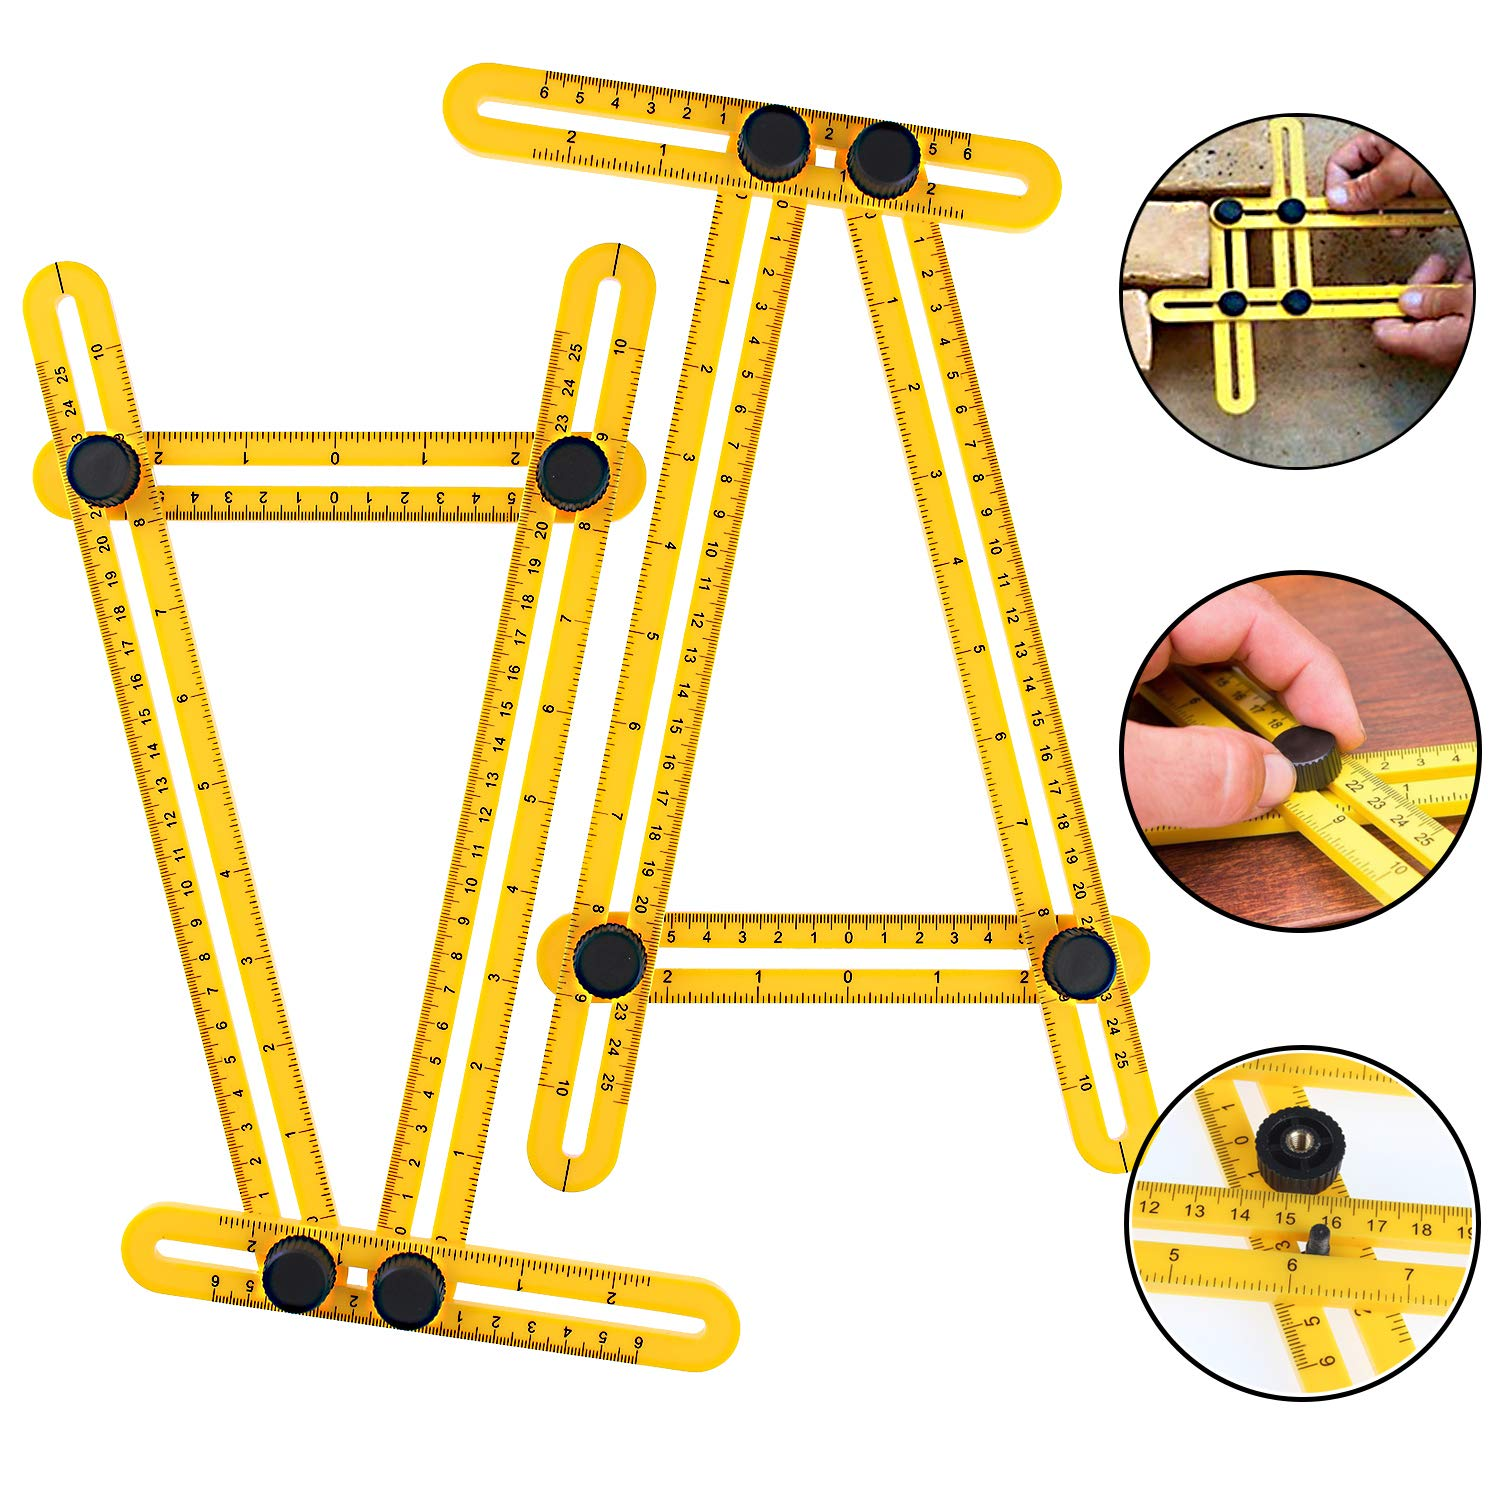 Aonesy Multi Angle Measuring Ruler Template Measurement Tool for All Angles Shapes Multi Functional Ruler Best for Craftsmen Handymen Builders Carpenter DIY Yellow 2Pack